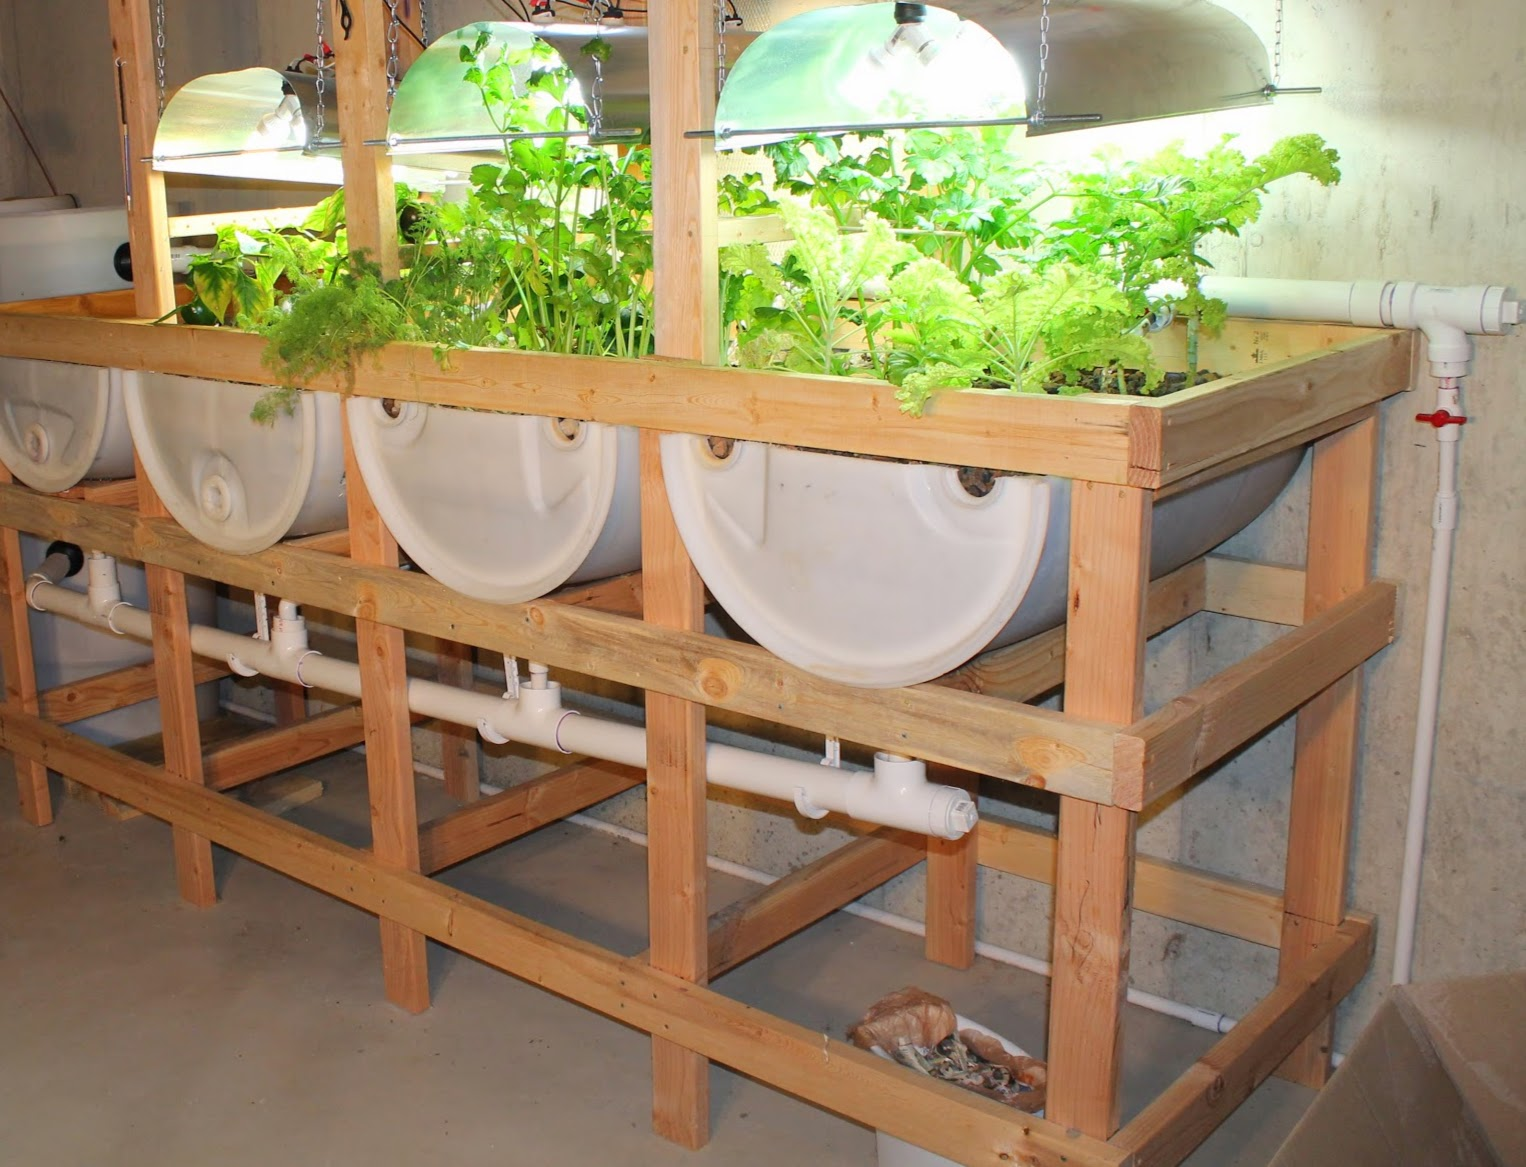 Suburban aquaponics benefits of indoor and outdoor for Aquaponics systems for sale